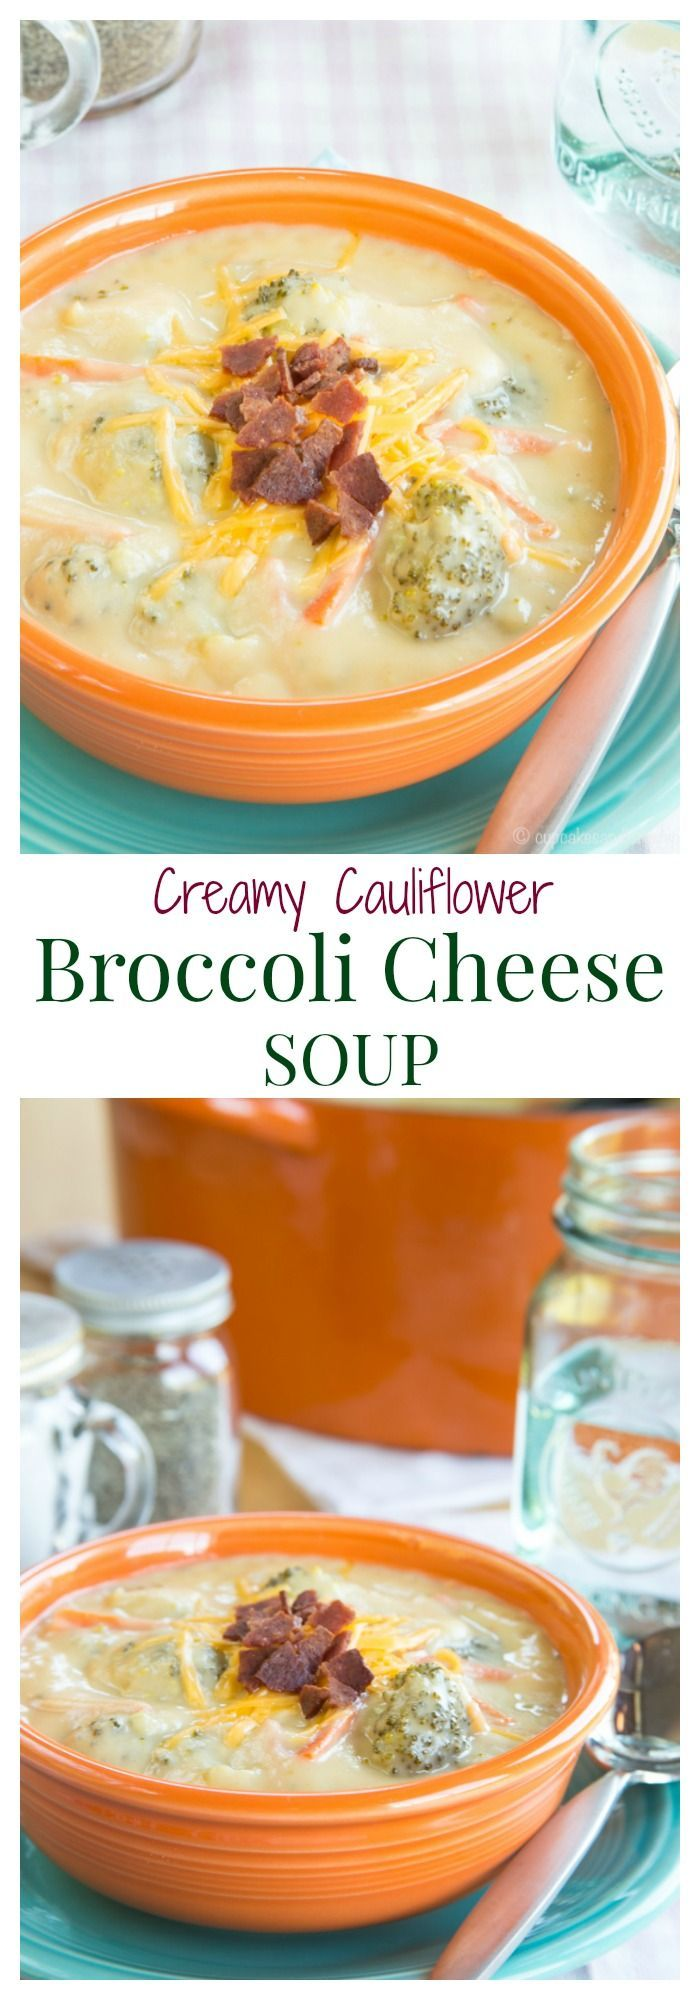 Low-Carb Cauliflower Cheese Soup Recipe